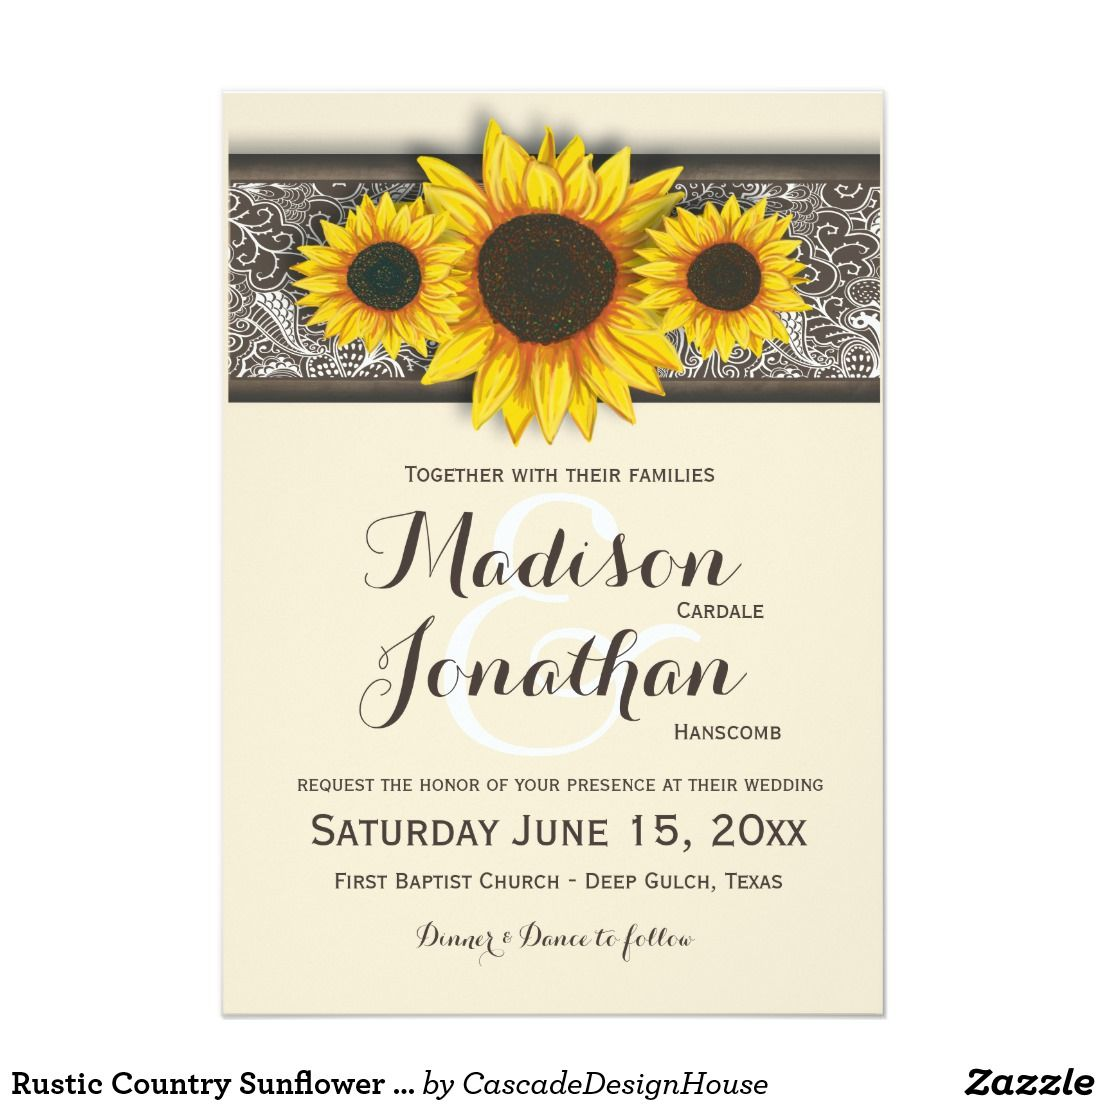 Rustic Country Sunflower Wedding Invitations   Rustic Country ...